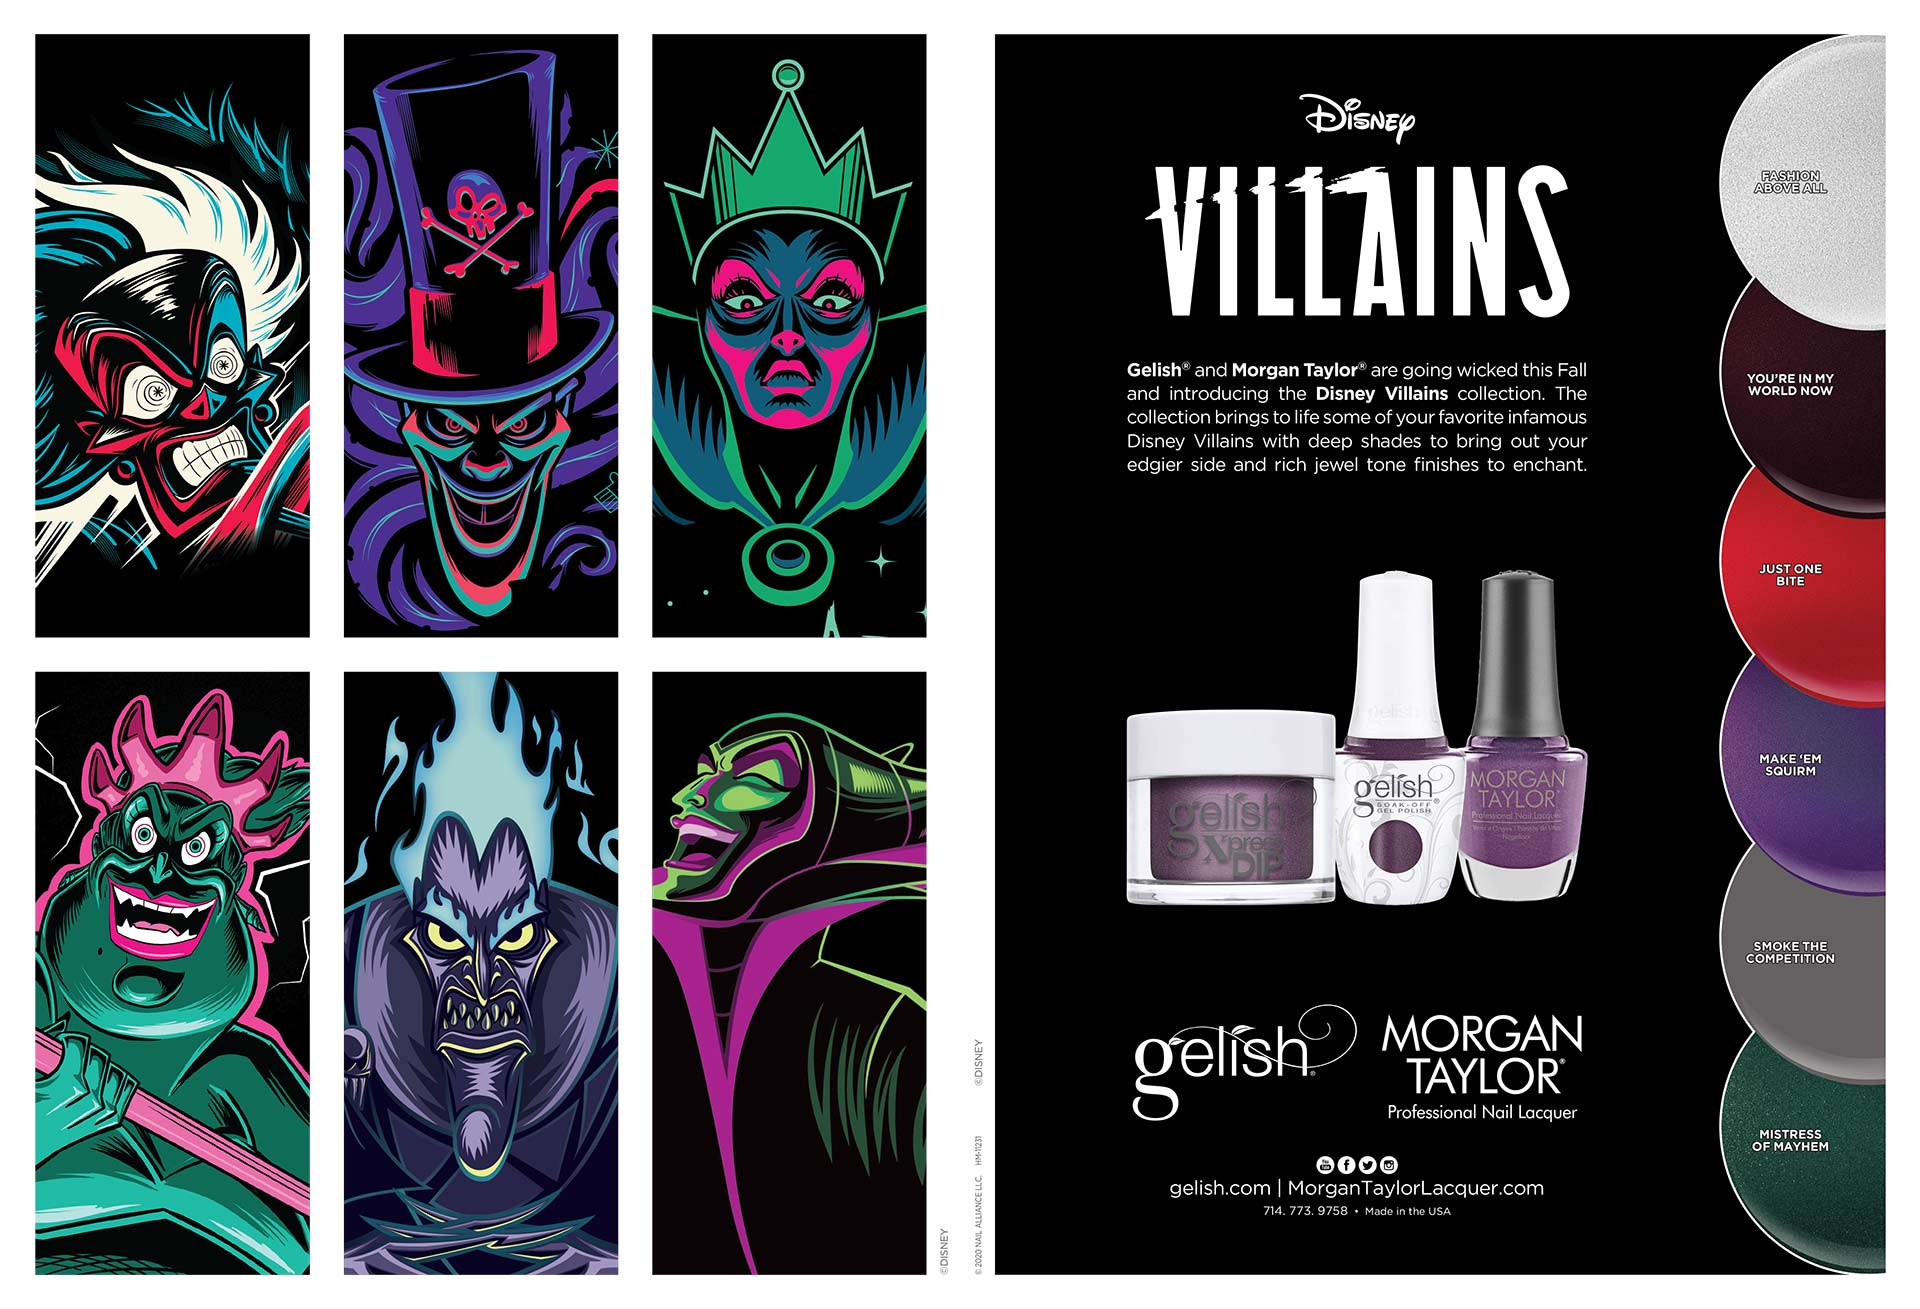 Gelish® and Morgan Taylor® are going wicked this Fall and introducing the Disney Villains collection. The collection brings to life some of your favorite infamous Disney Villains with deep shades to bring out your edgier side and rich jewel tone finishes to enchant.